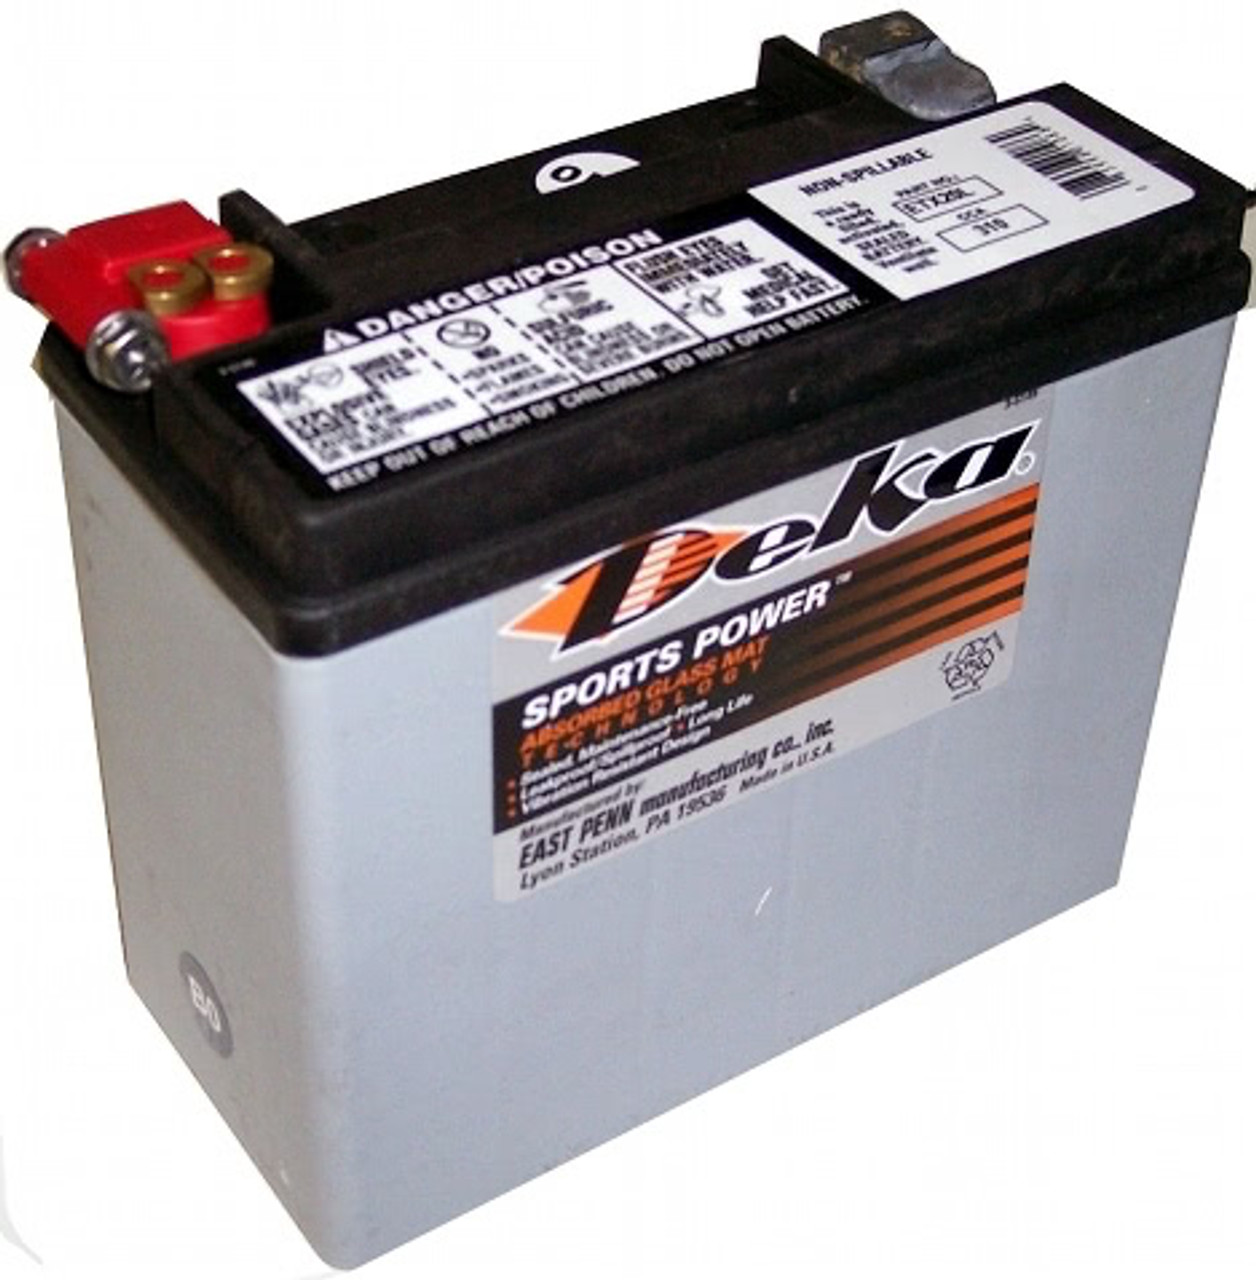 Harley Davidson Battery >> Harley Davidson 65989 97a Battery Replacement